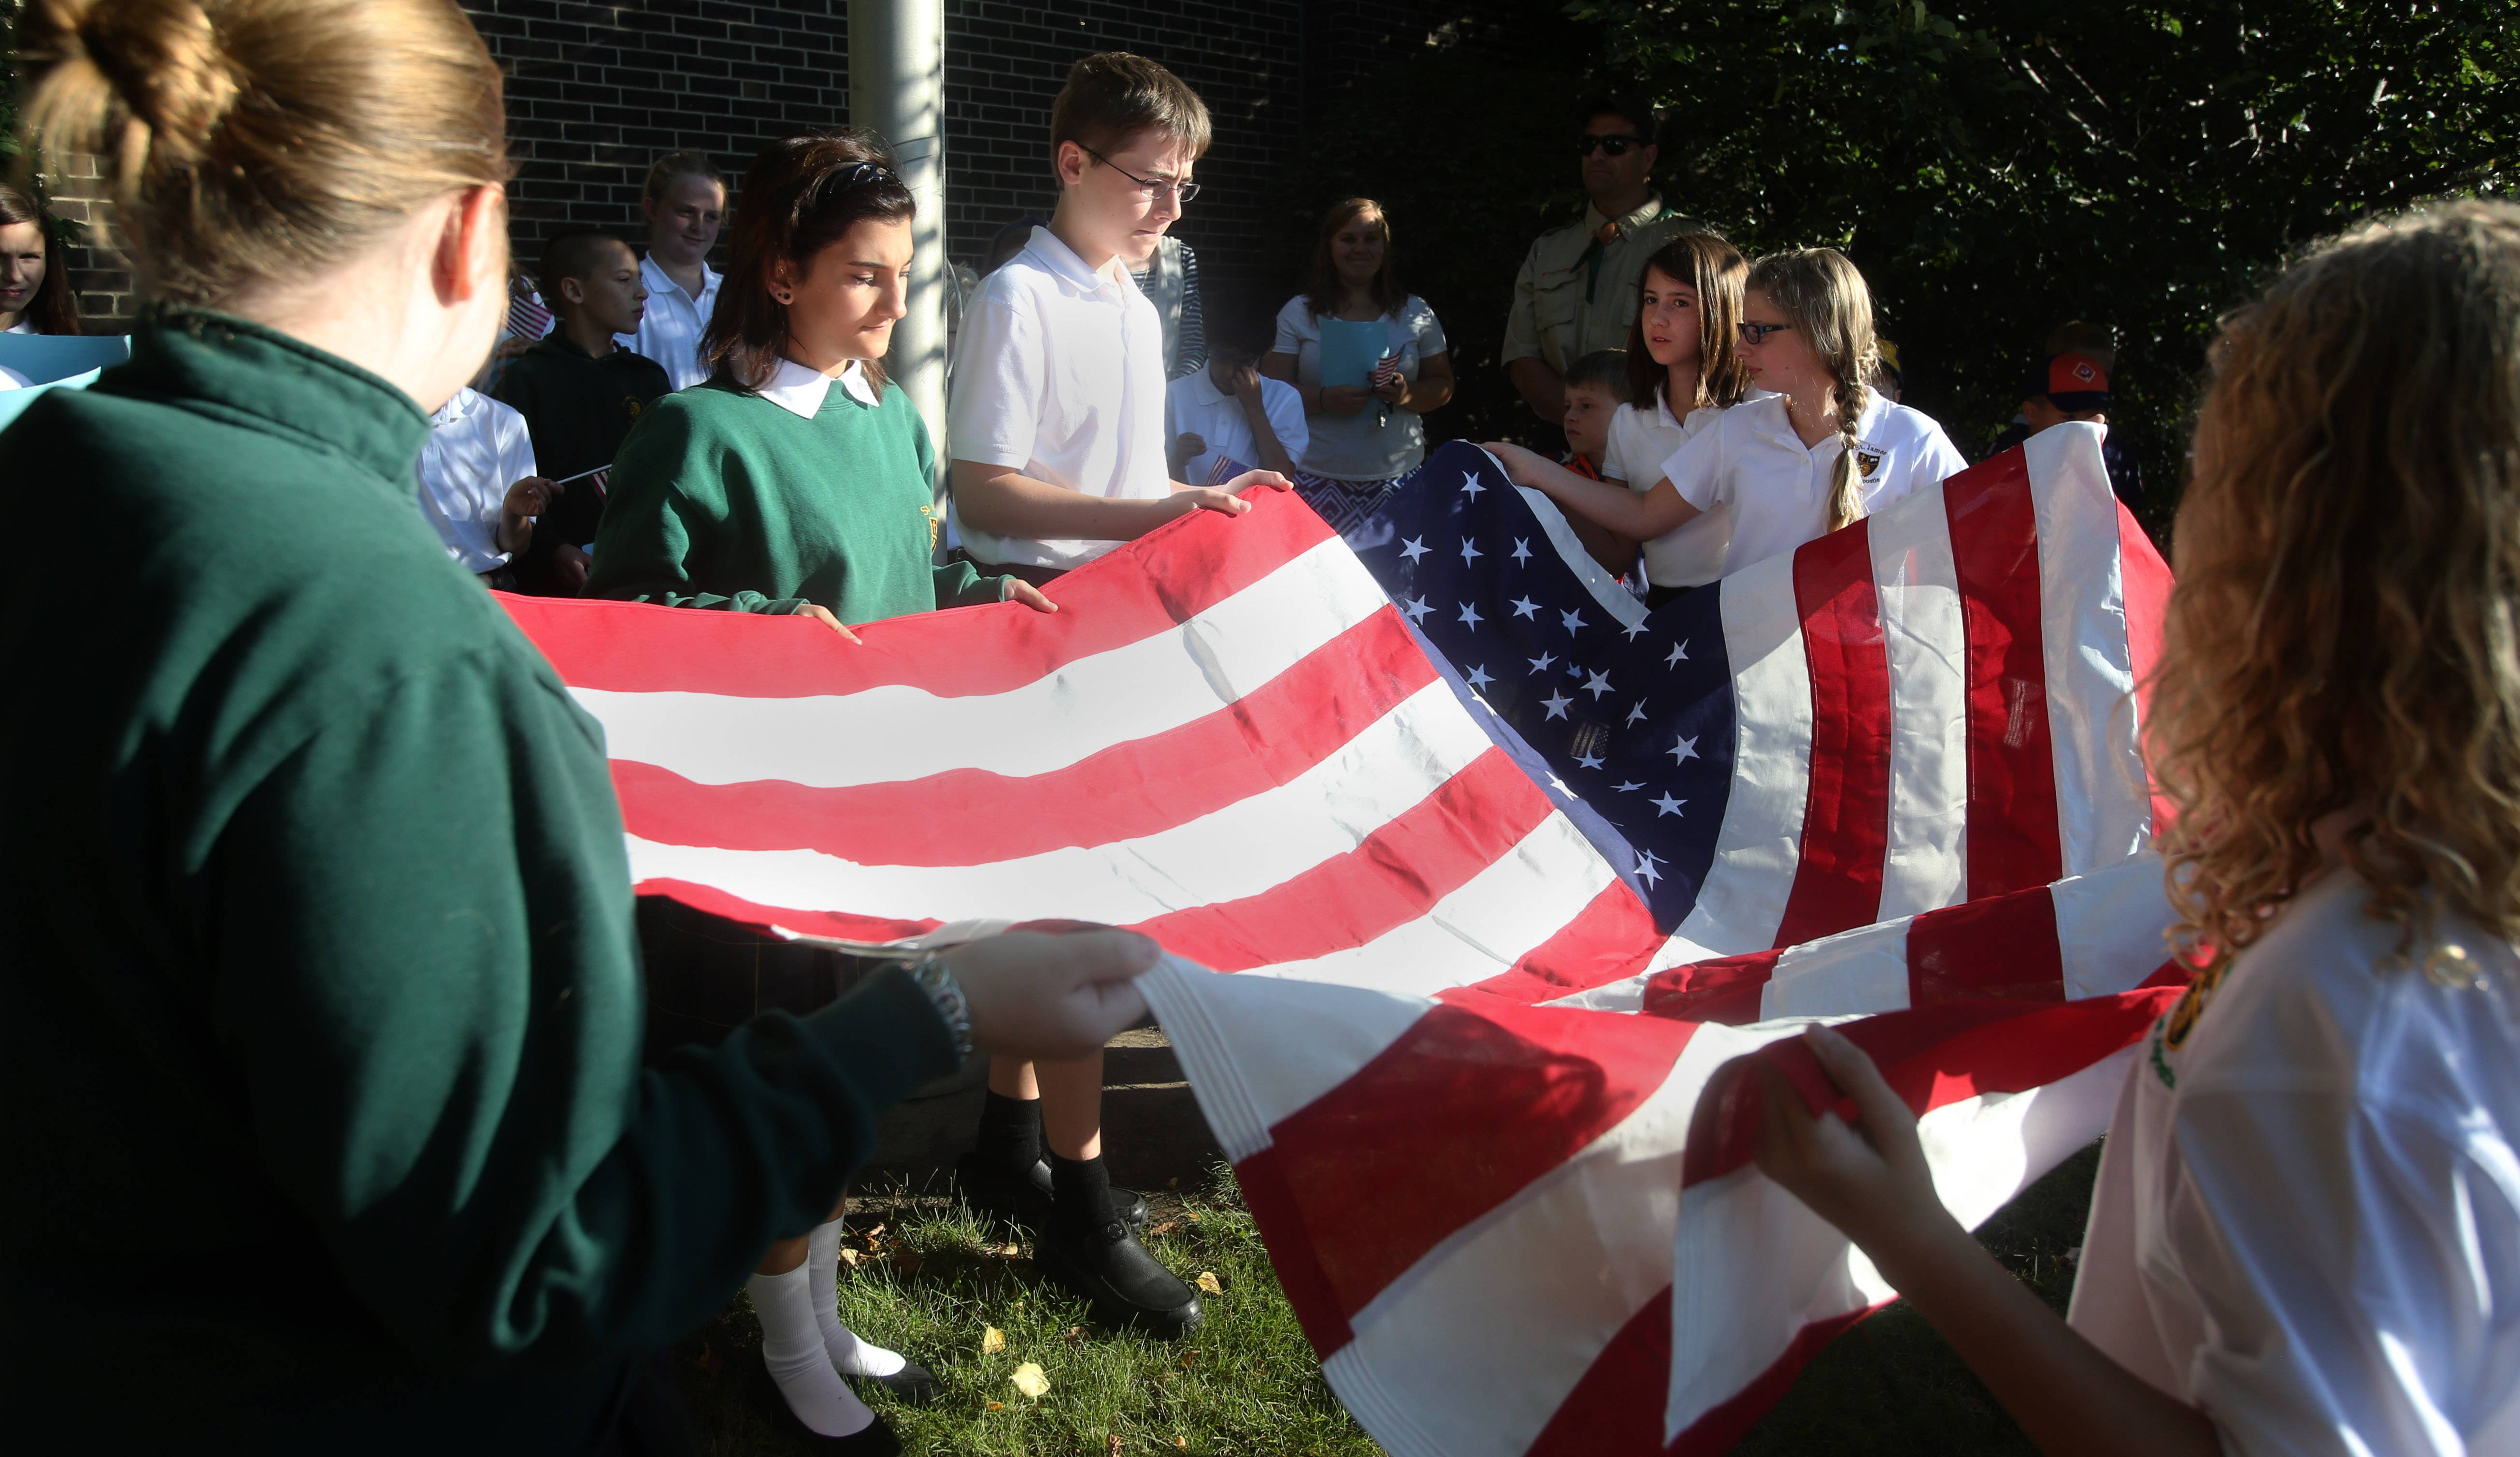 A new American flag takes the place of one that had become old and worn at Glen Ellyn's St. James the Apostle School.